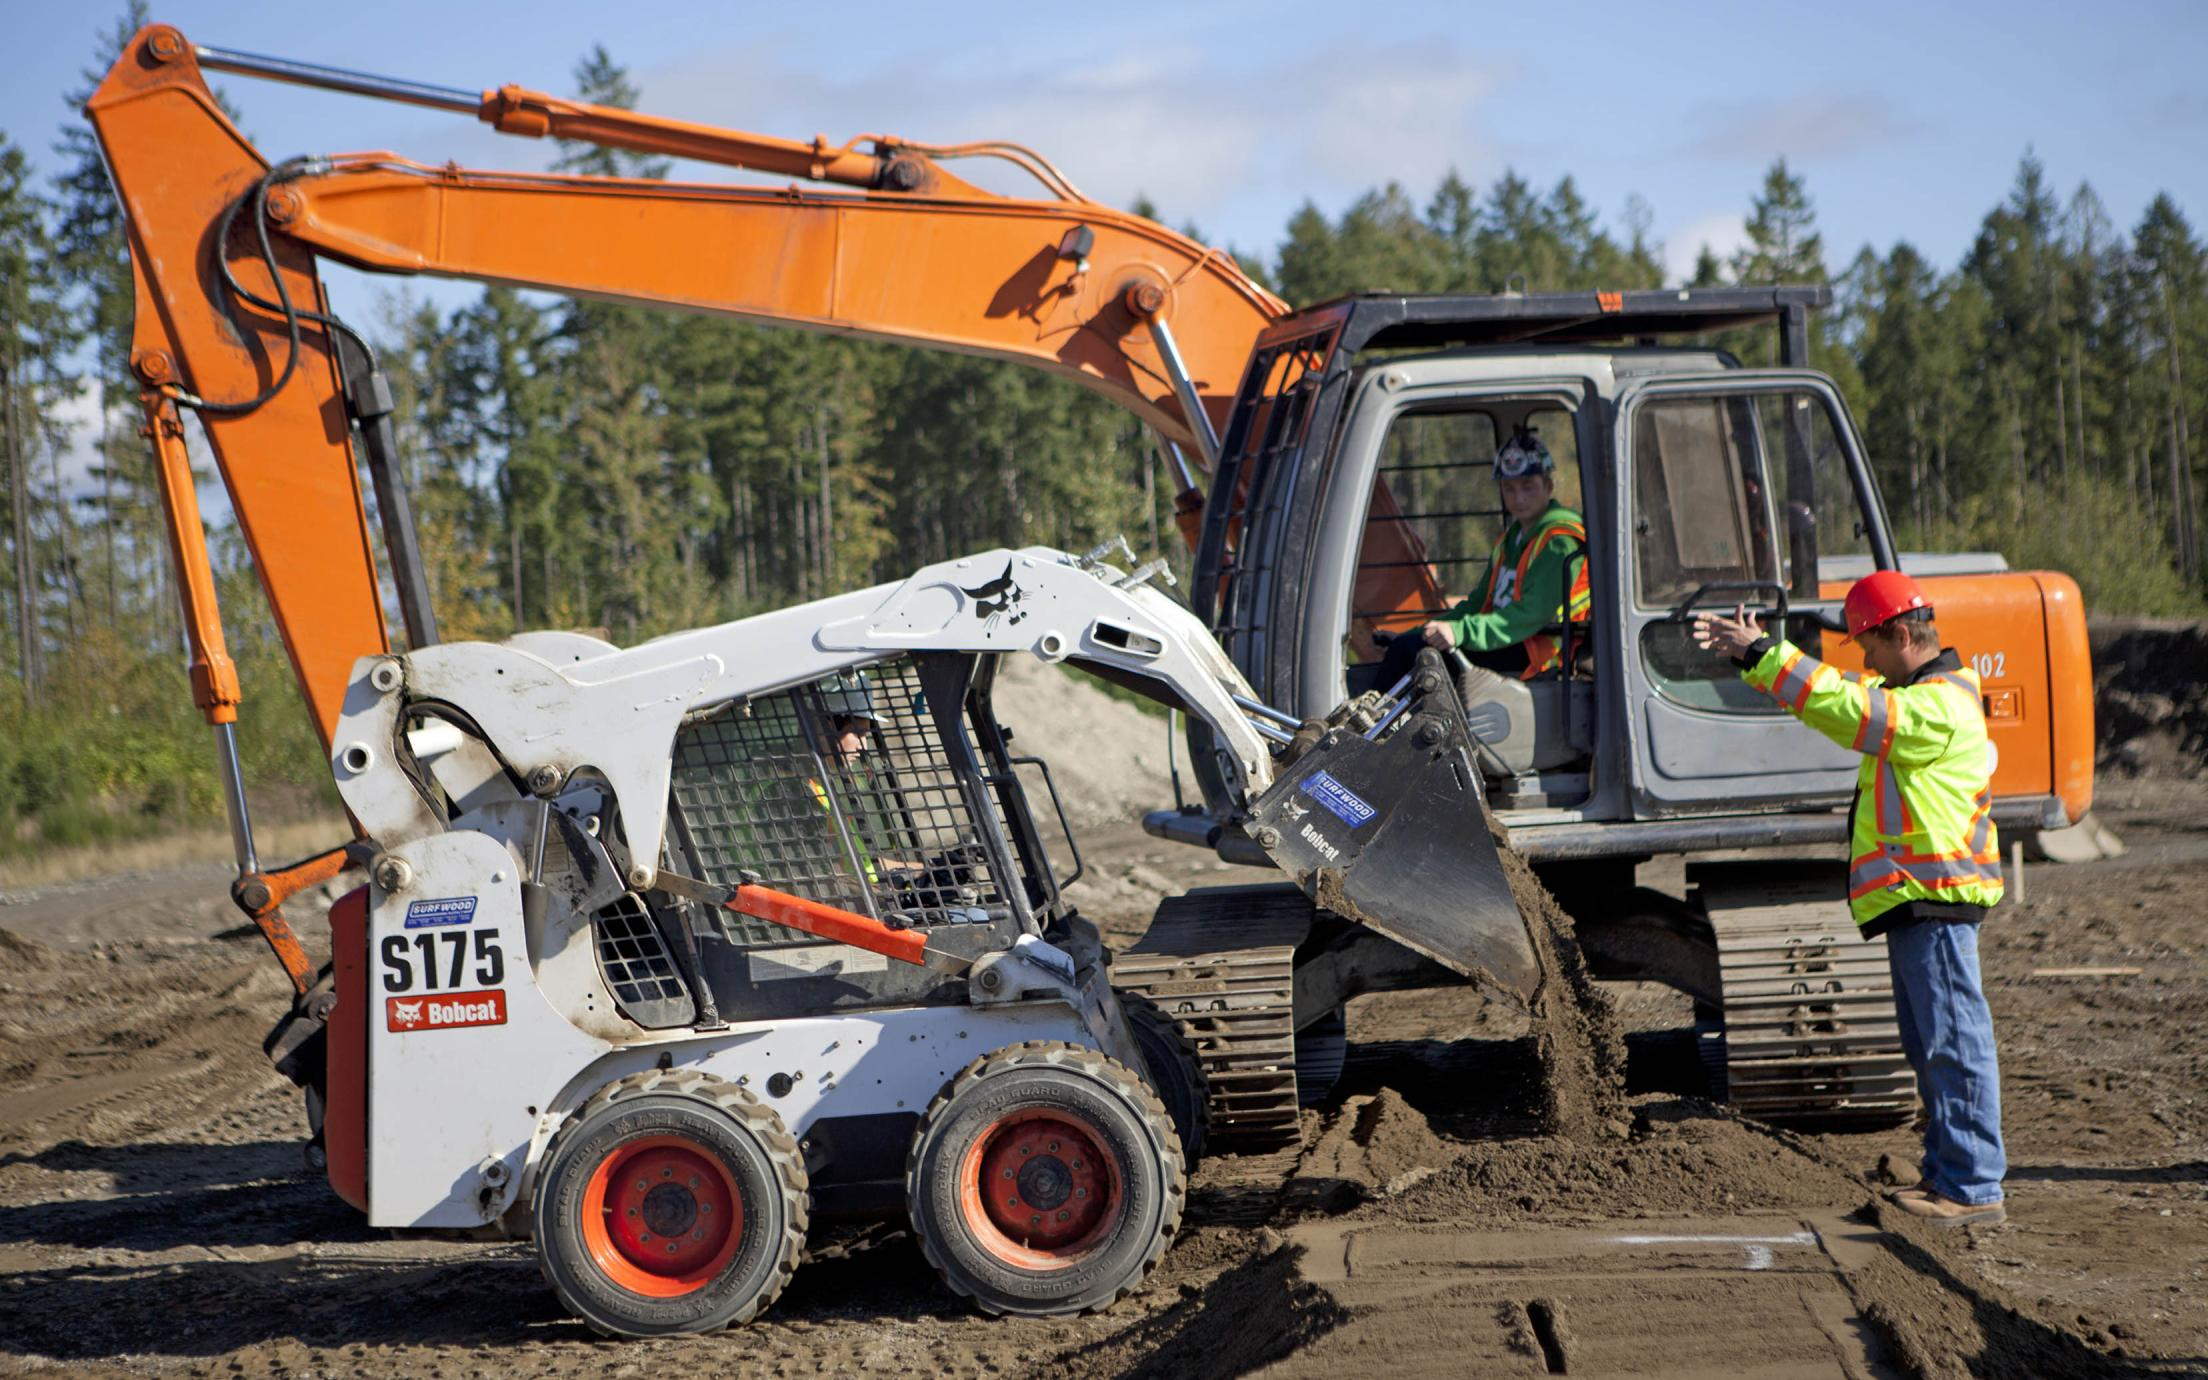 Vancouver Island University's Heavy Equipment Operator courses' students working on a construction site at the school for heavy equipment operators